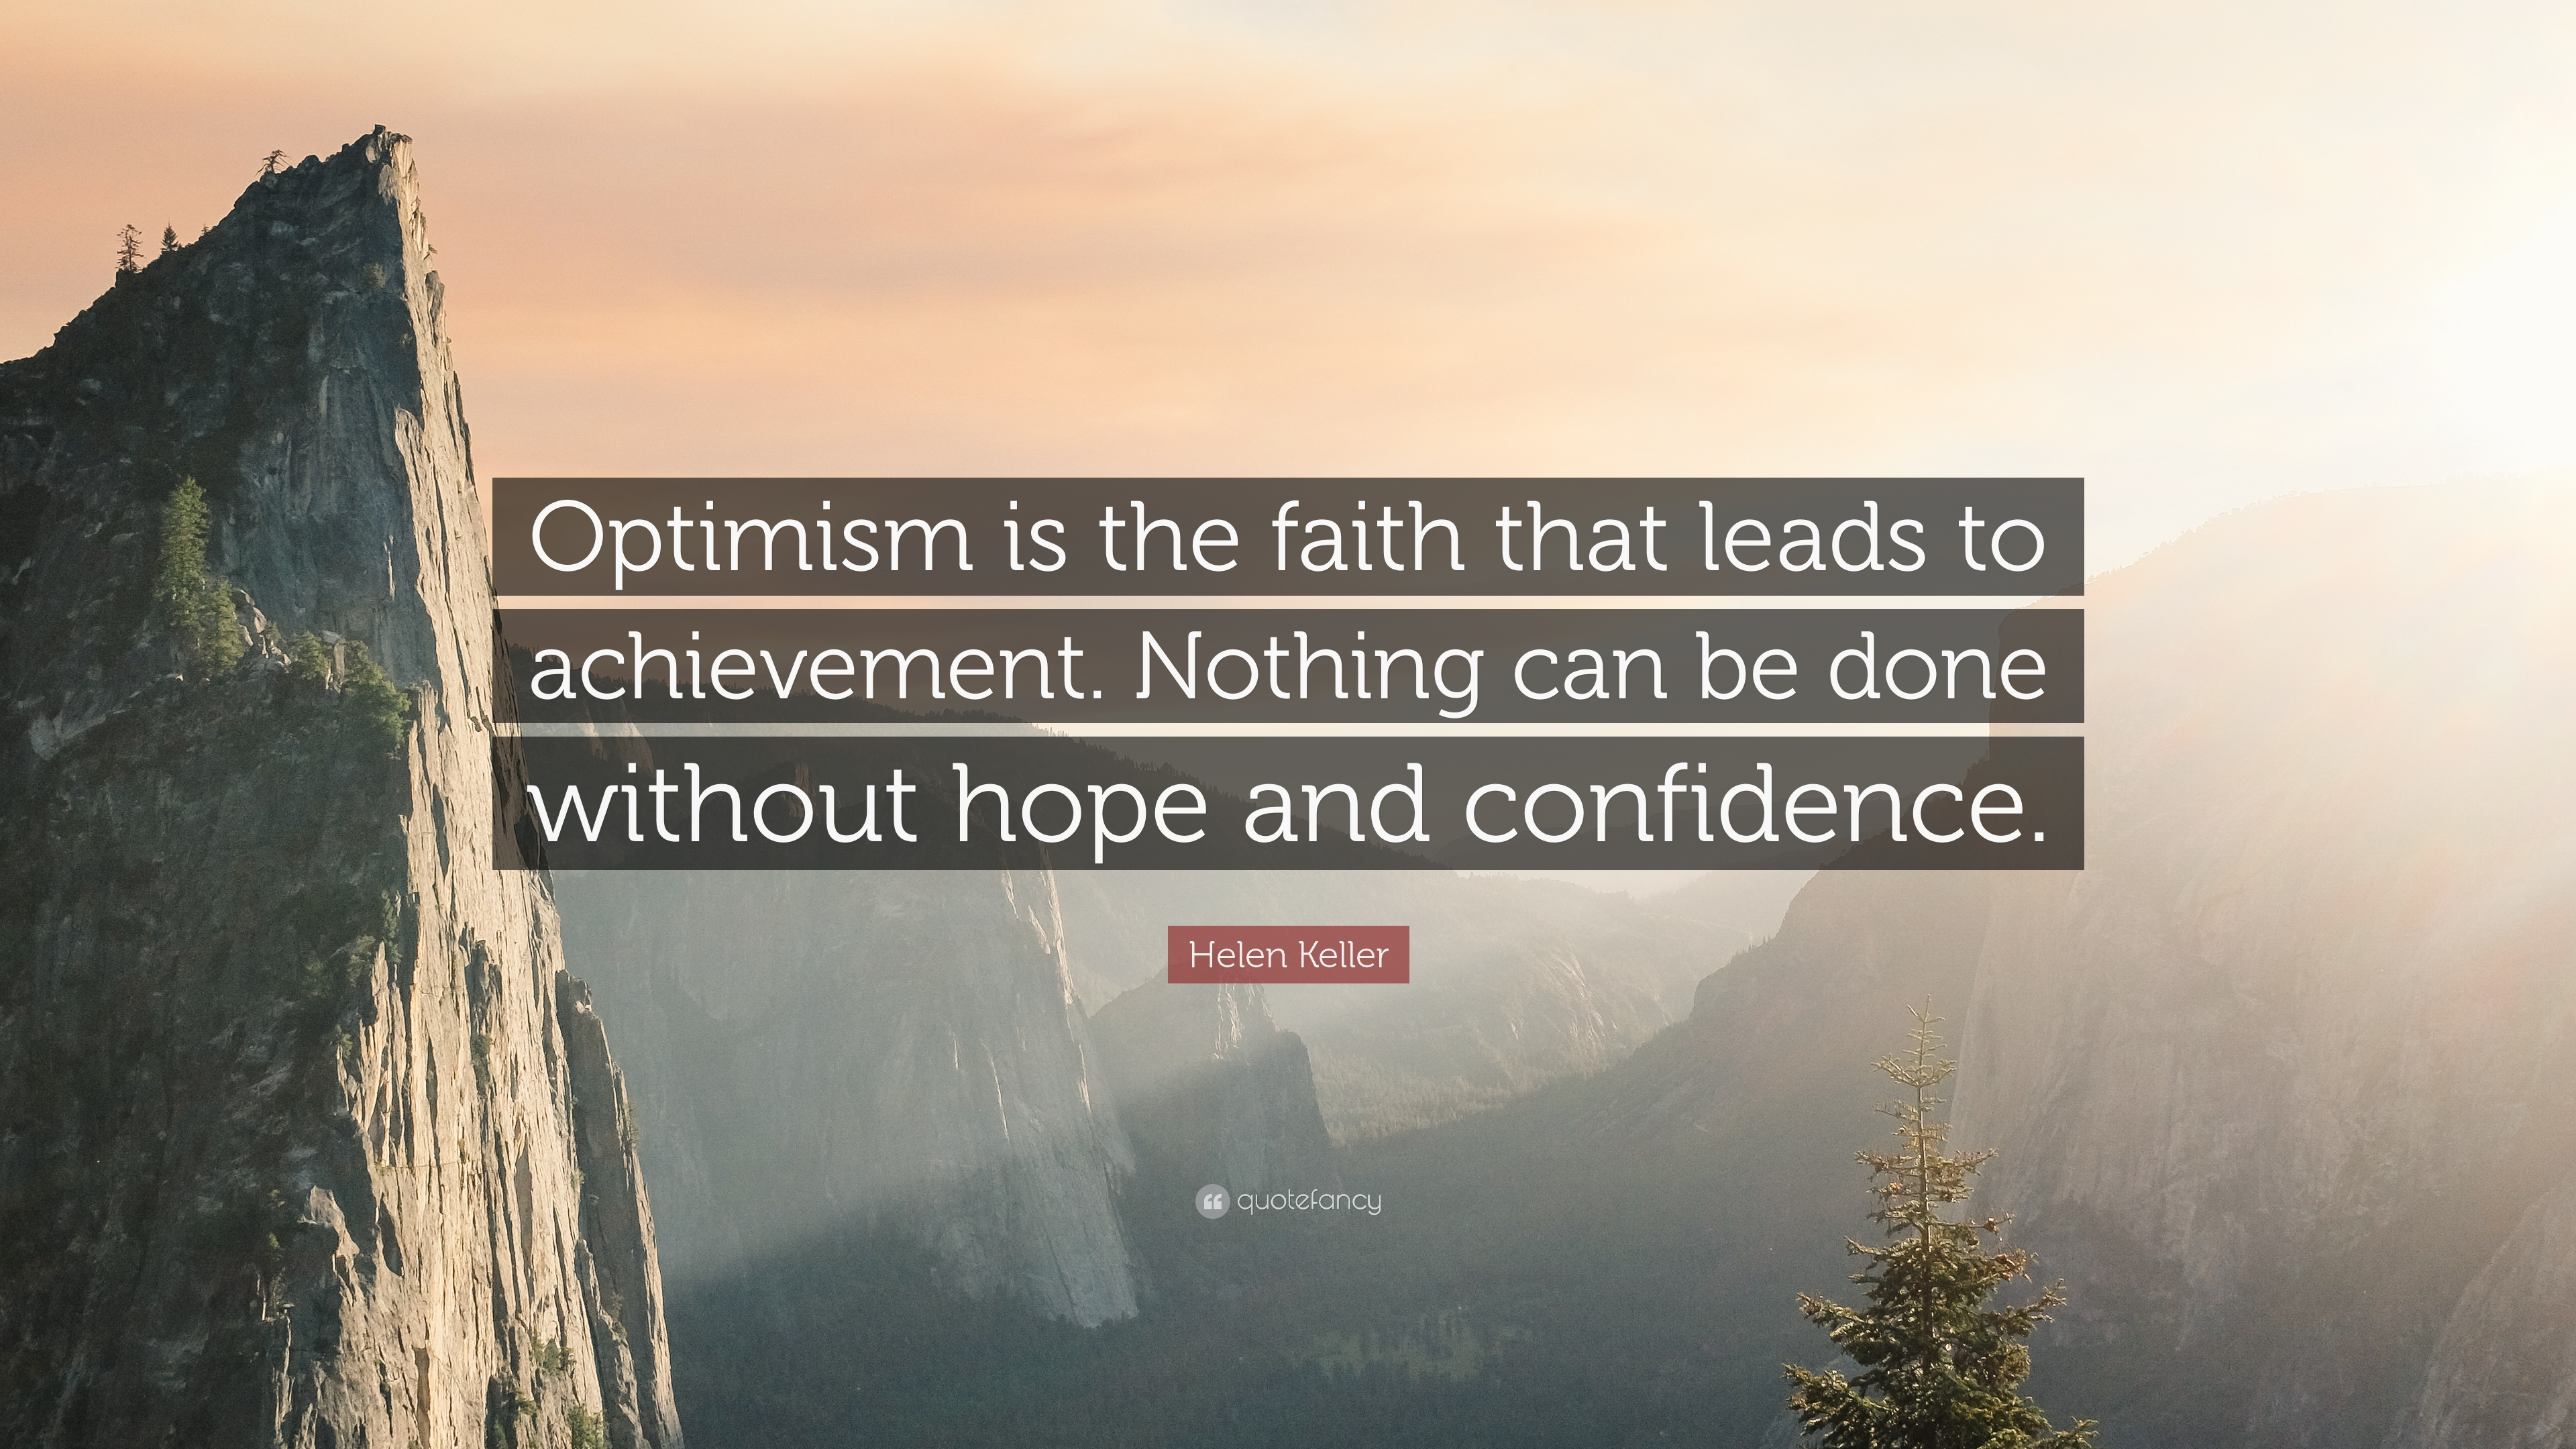 Helen Keller Quote Optimism Is The Faith That Leads To Achievement